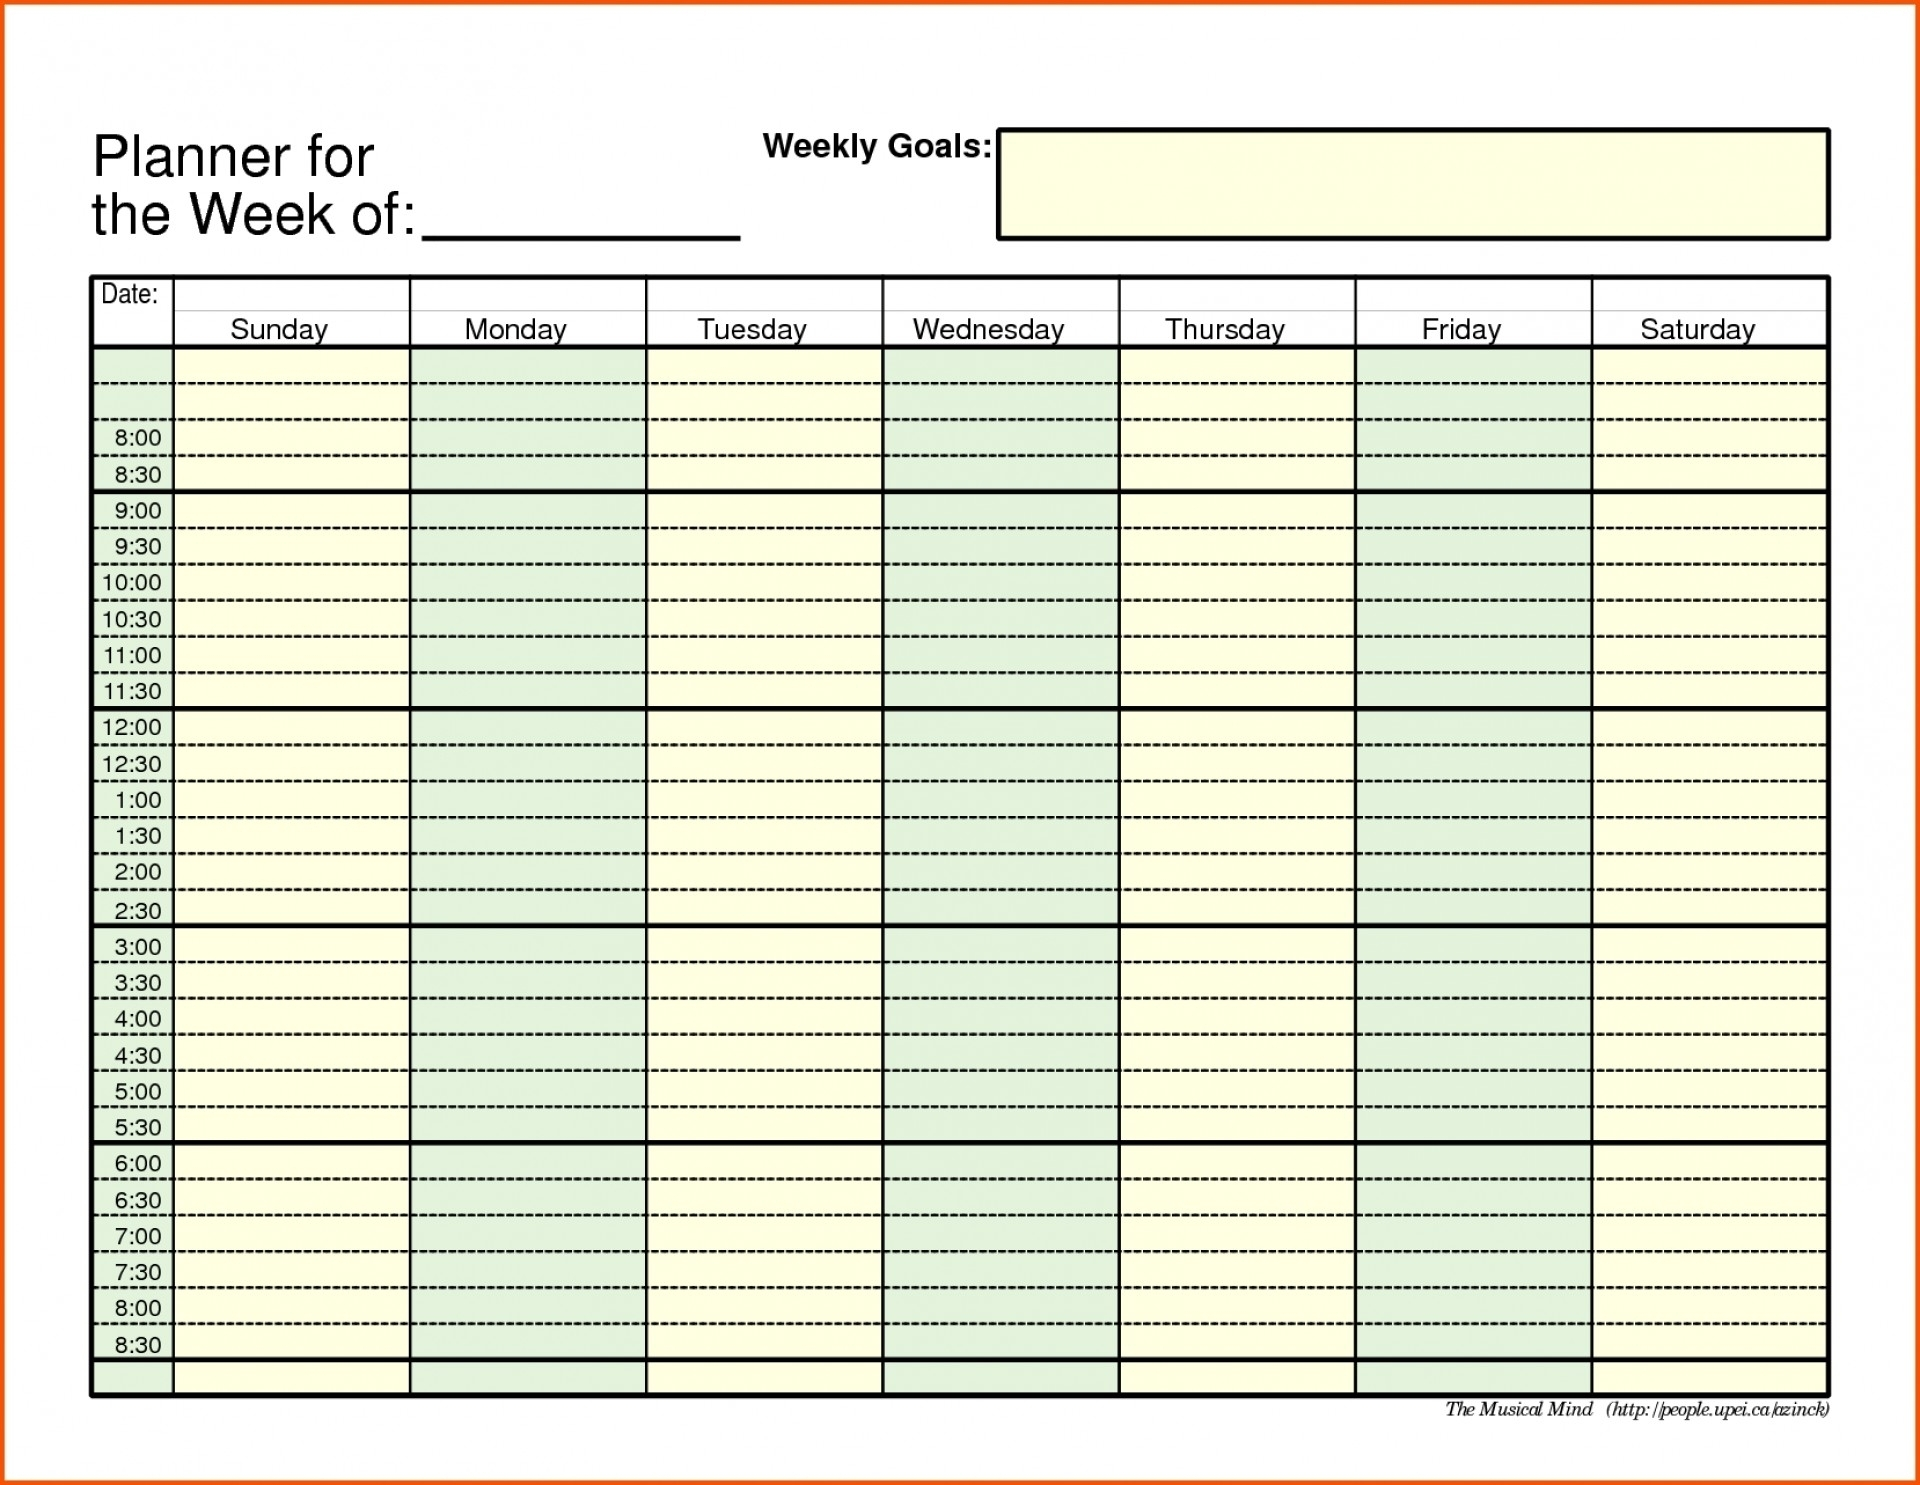 Daily Schedule With Time Slots - Calendar Inspiration Design